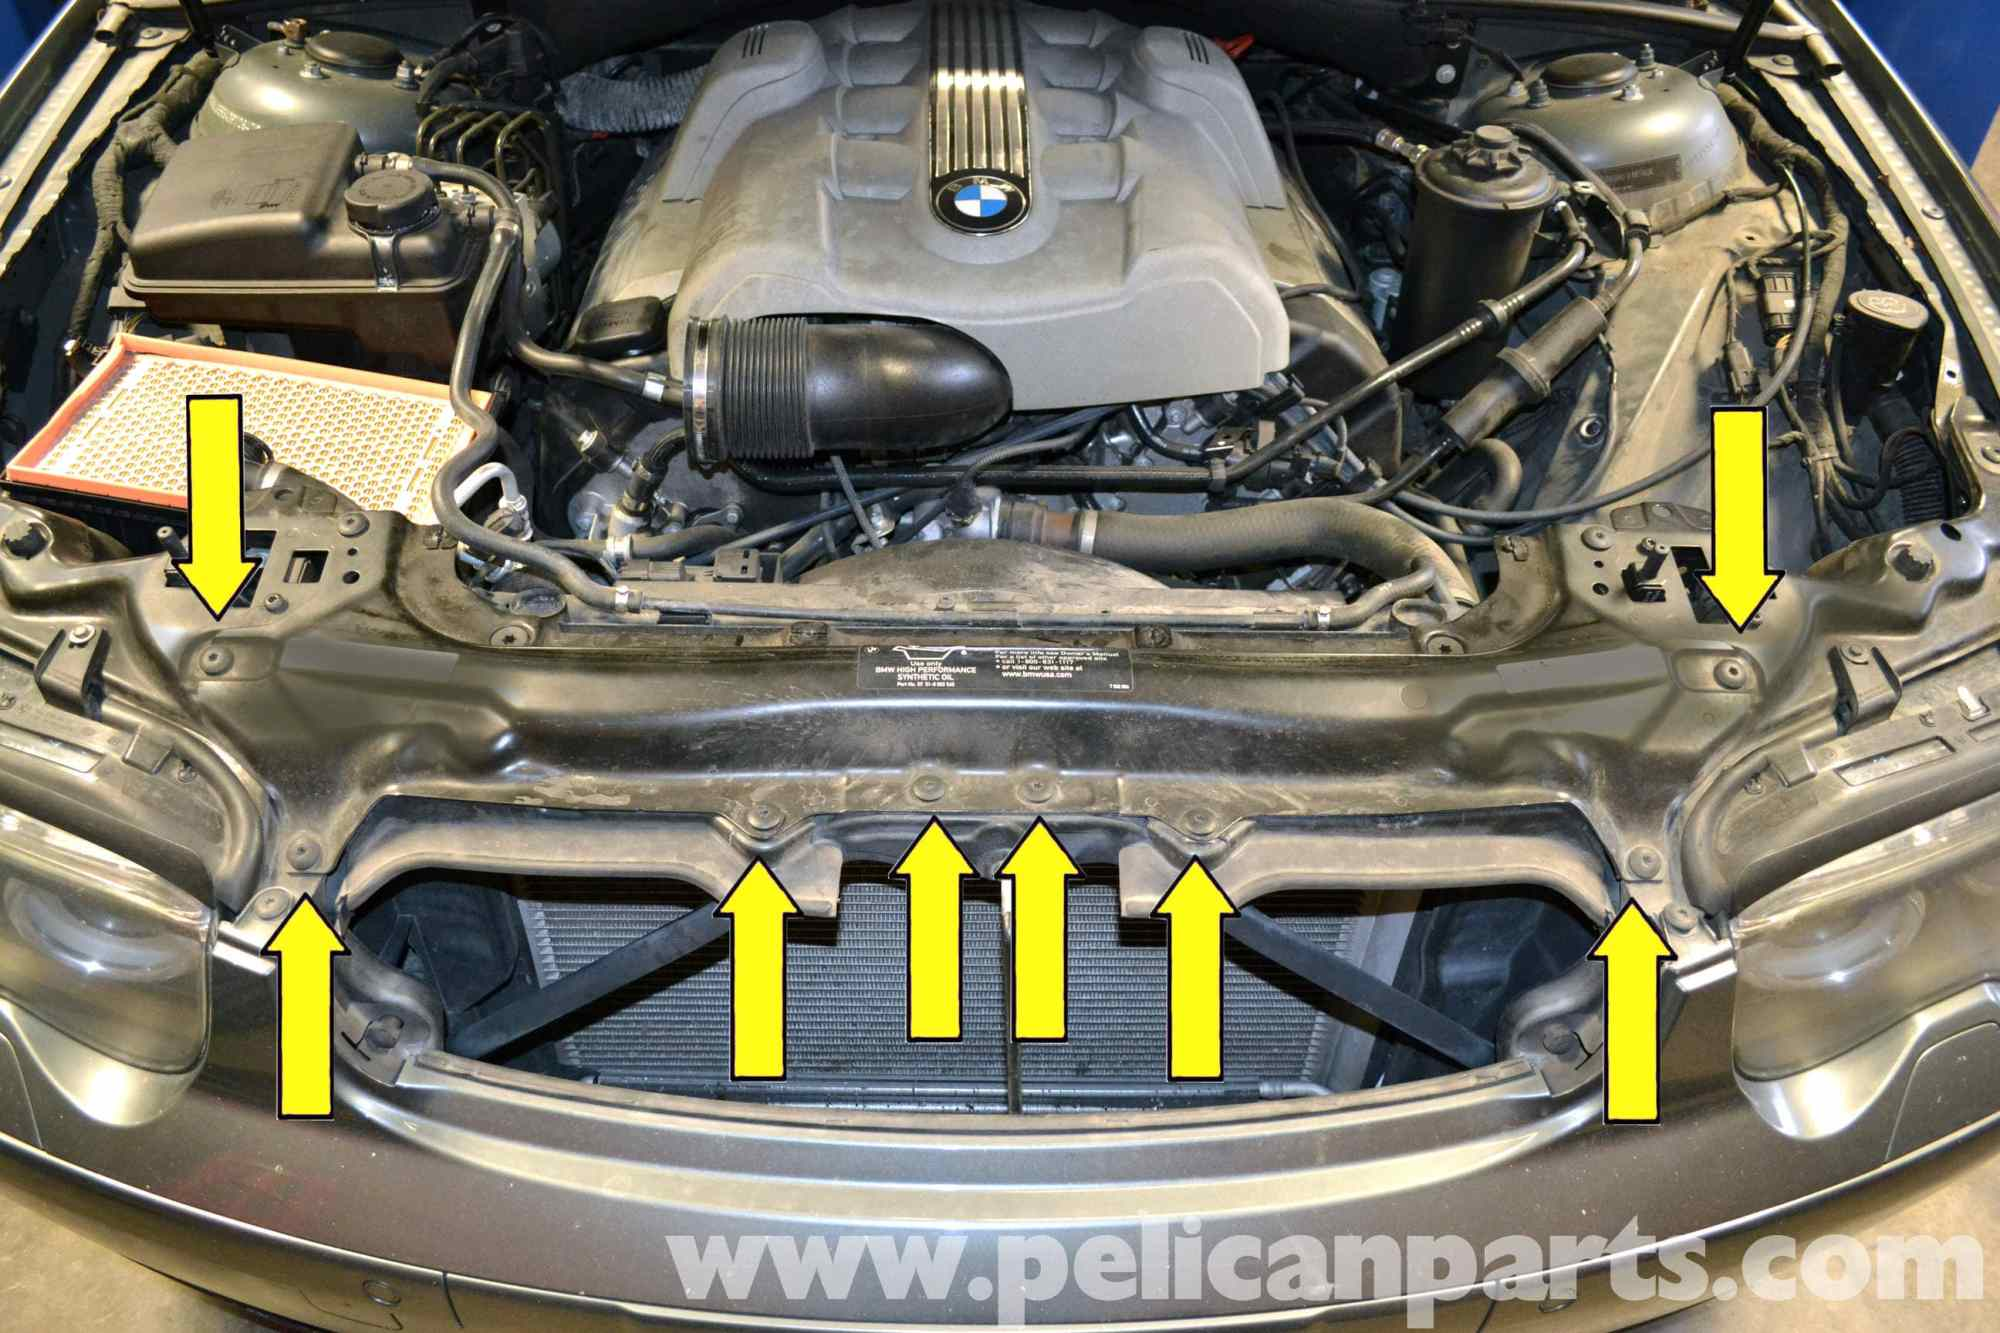 hight resolution of 2006 bmw 750li engine diagram bmw the infamous alternator bracket oil leak on the